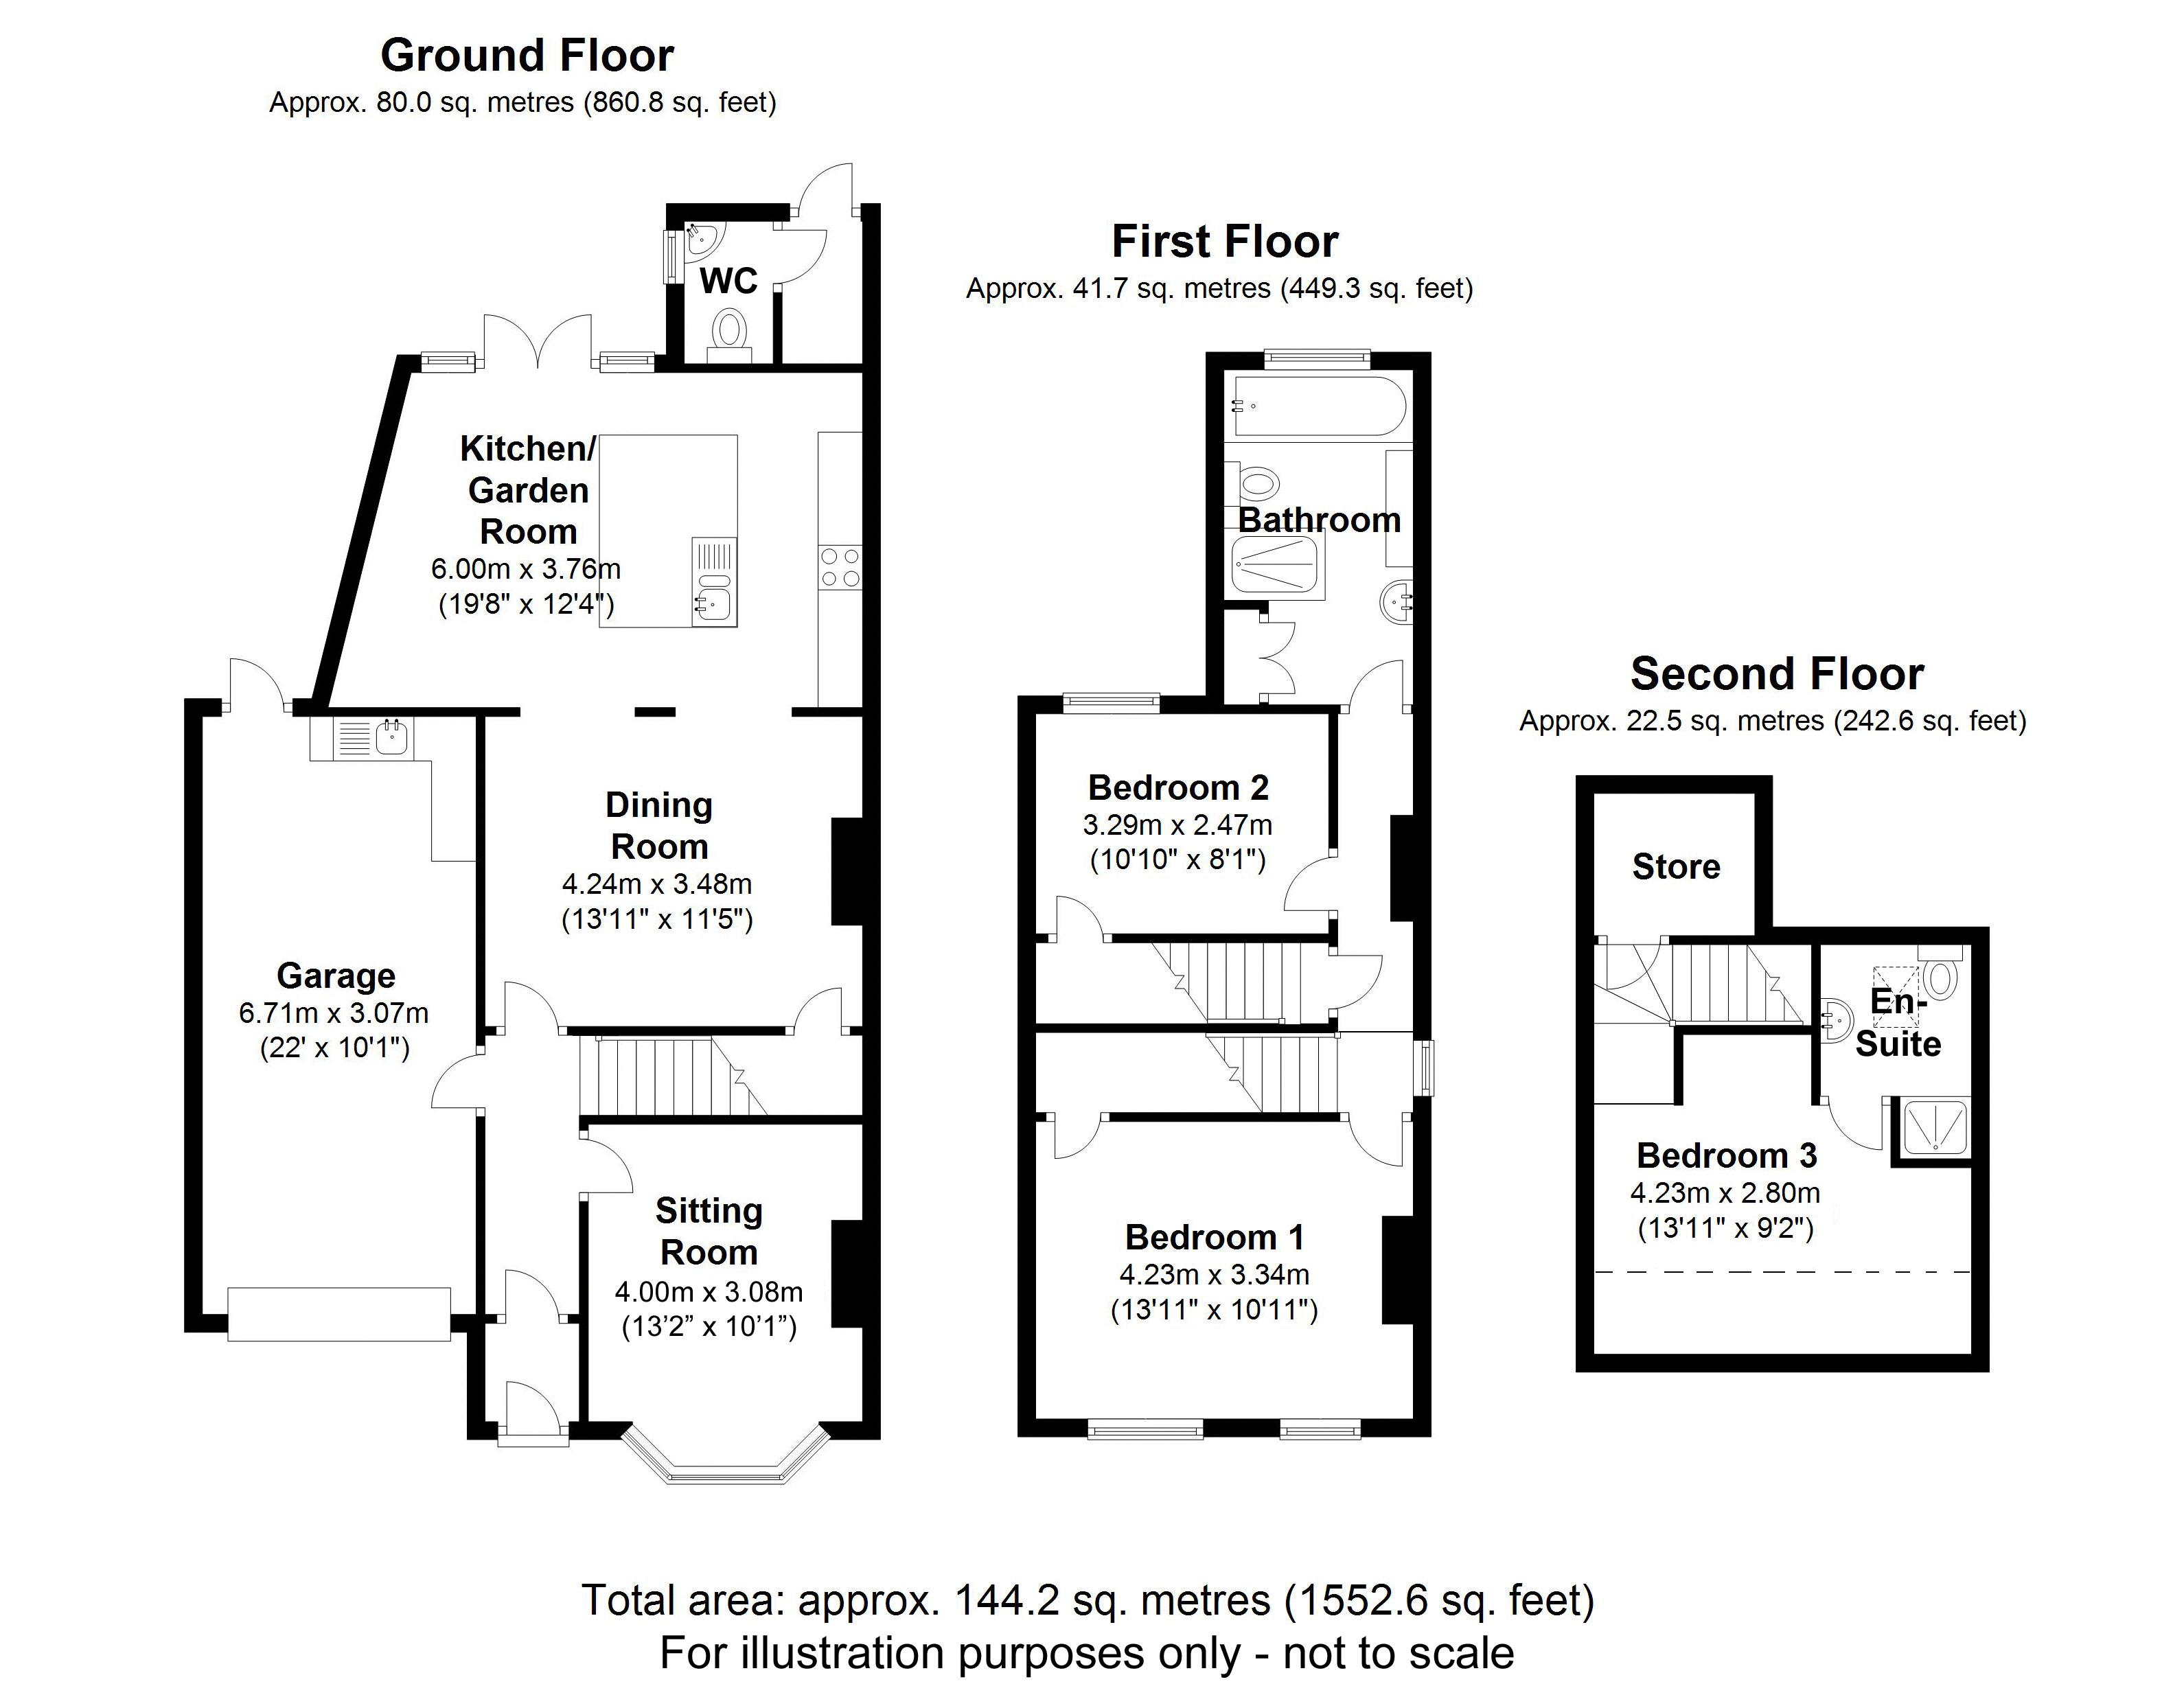 134 Lodge Road, West Midlands. Floorplan.